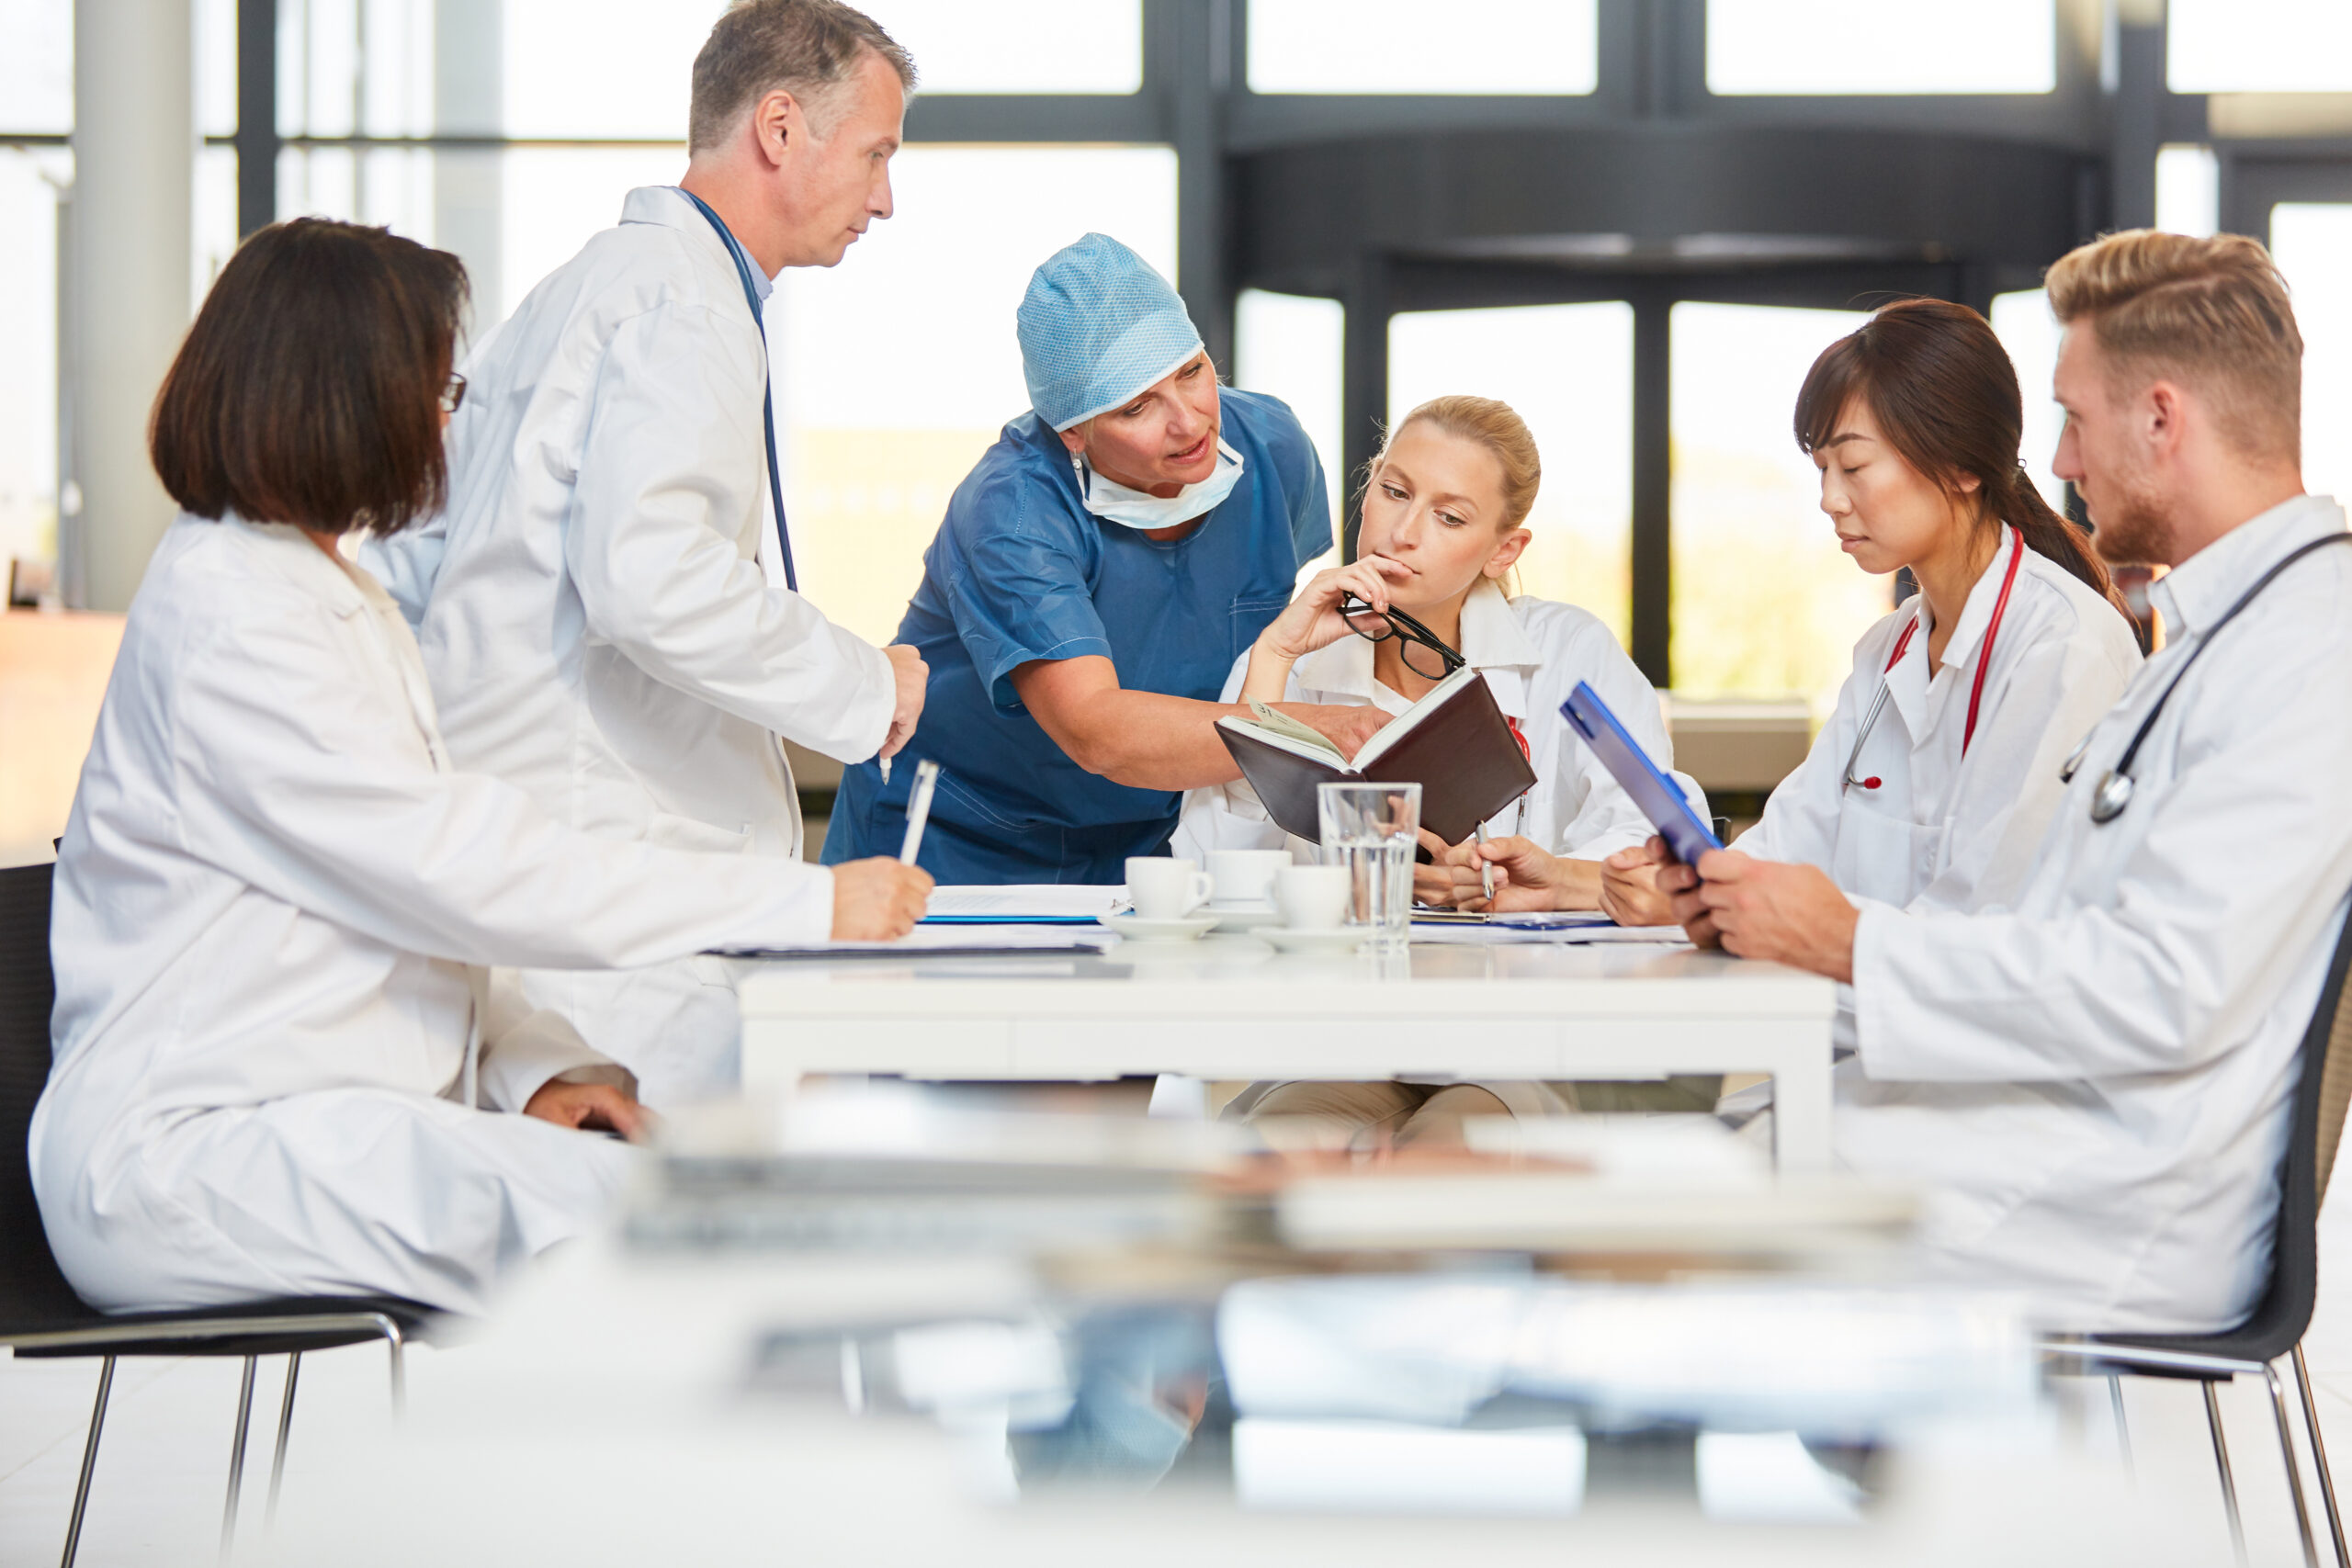 Physicians and Surgeons: What are their Similarities and Differences?